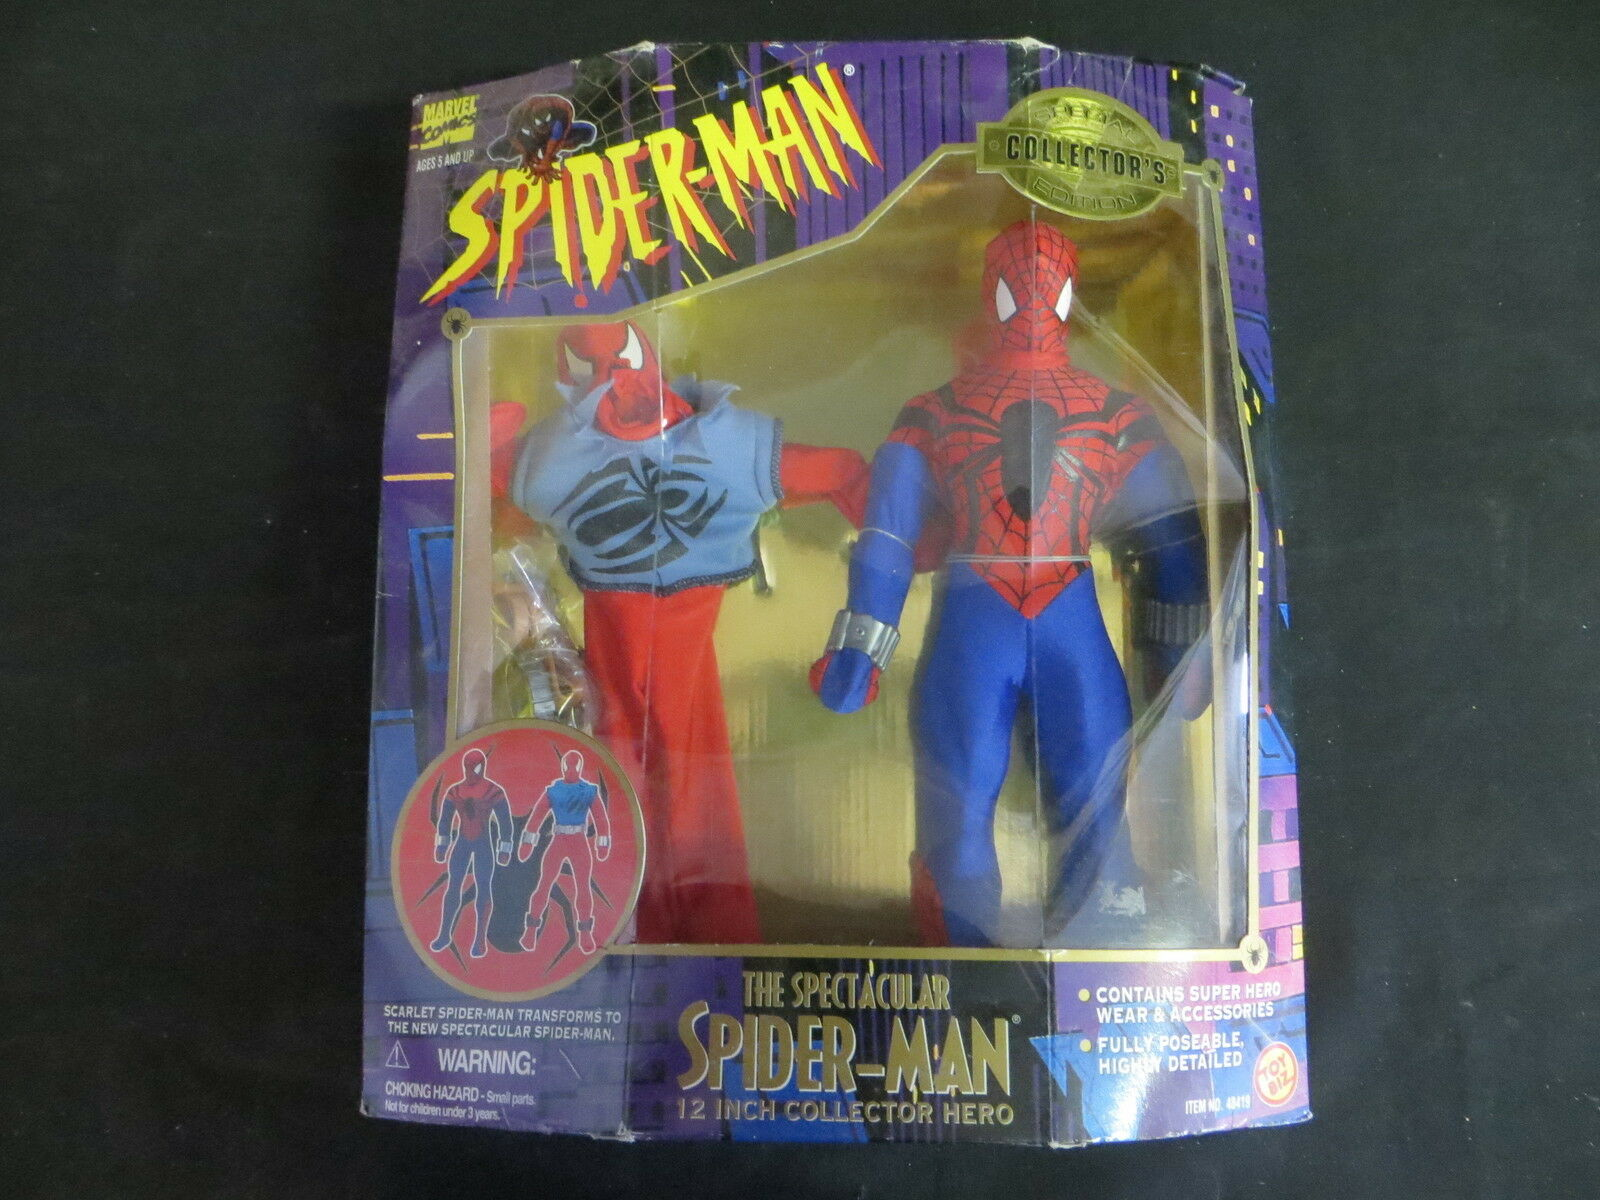 SPECTACULAR SPIDER-MAN 12 INCH FIGURE COLLECTOR HERO SPECIAL EDITION MISB HTF